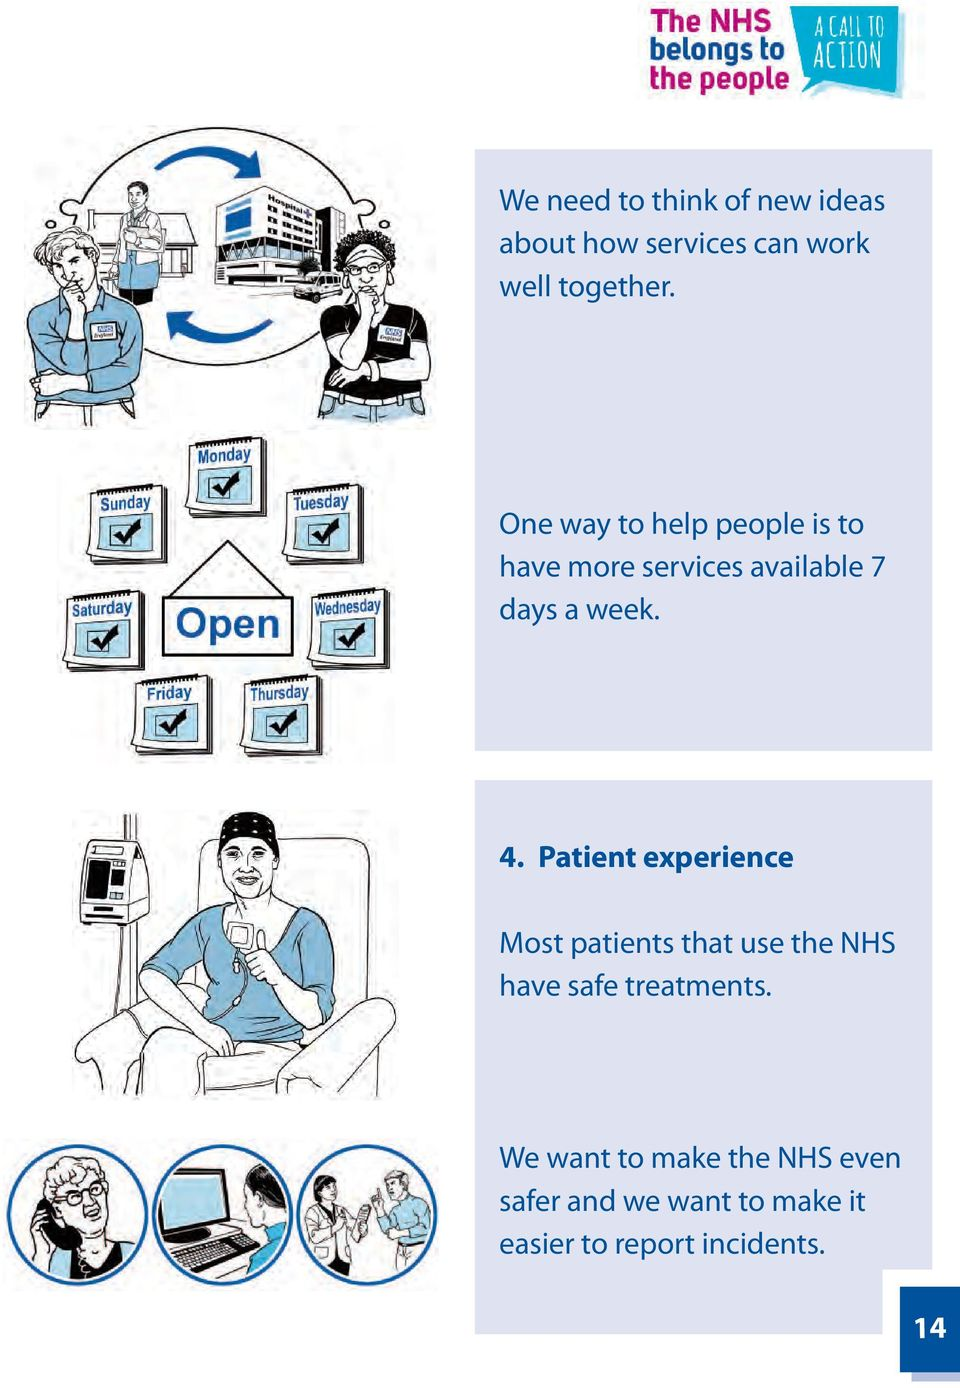 Patient experience Most patients that use the NHS have safe treatments.